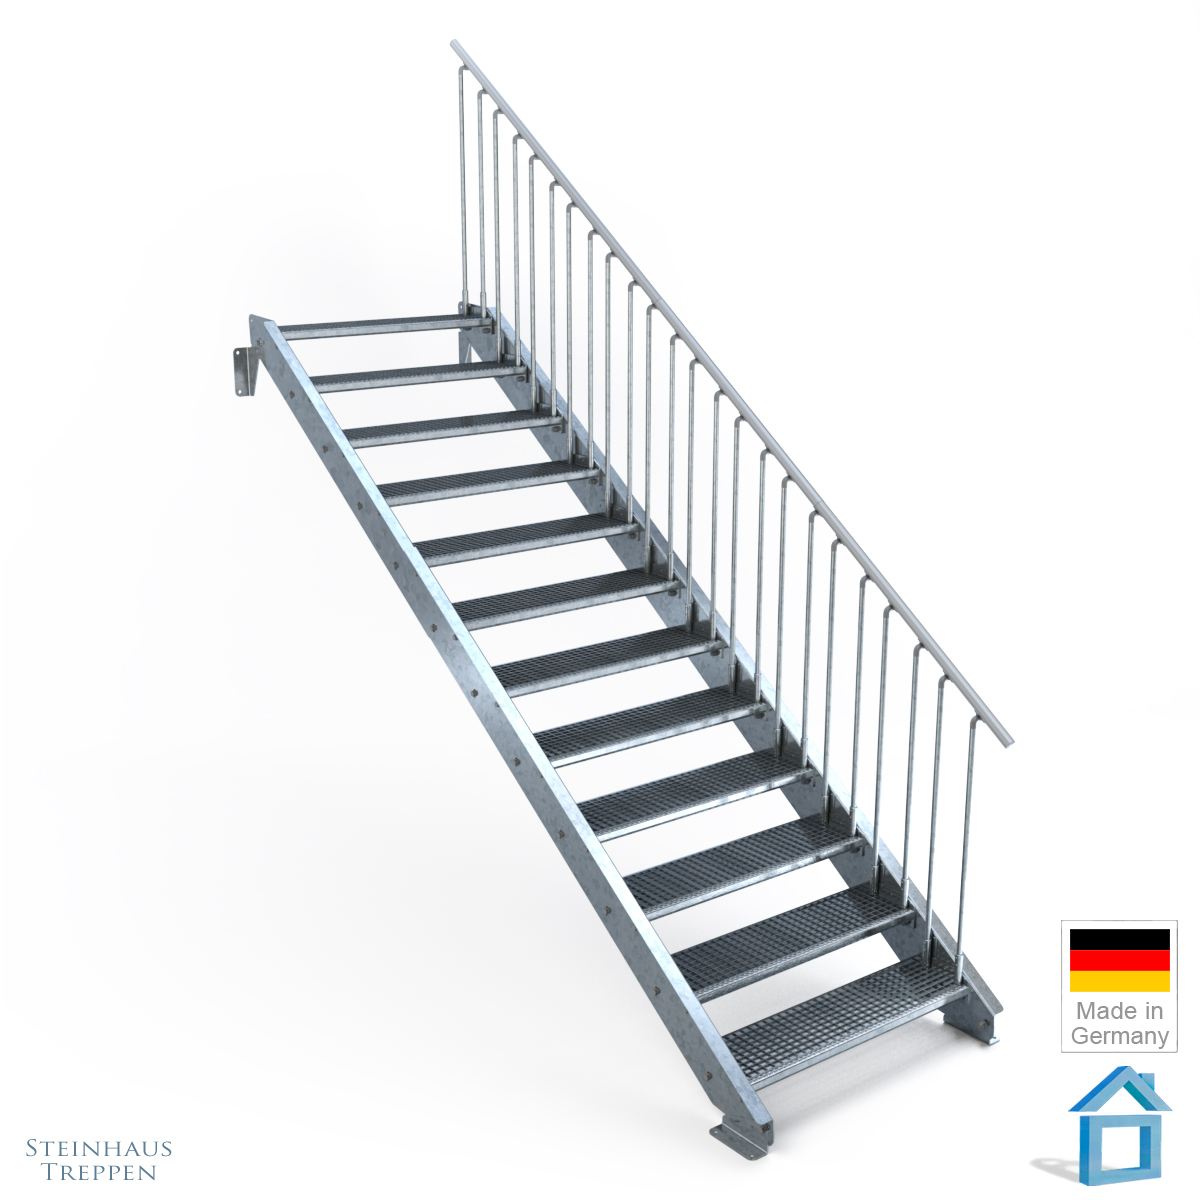 stahltreppe mit 12 stufen mit gitter belag 100 cm breite treppe f r h he max 260 cm steinhaus. Black Bedroom Furniture Sets. Home Design Ideas